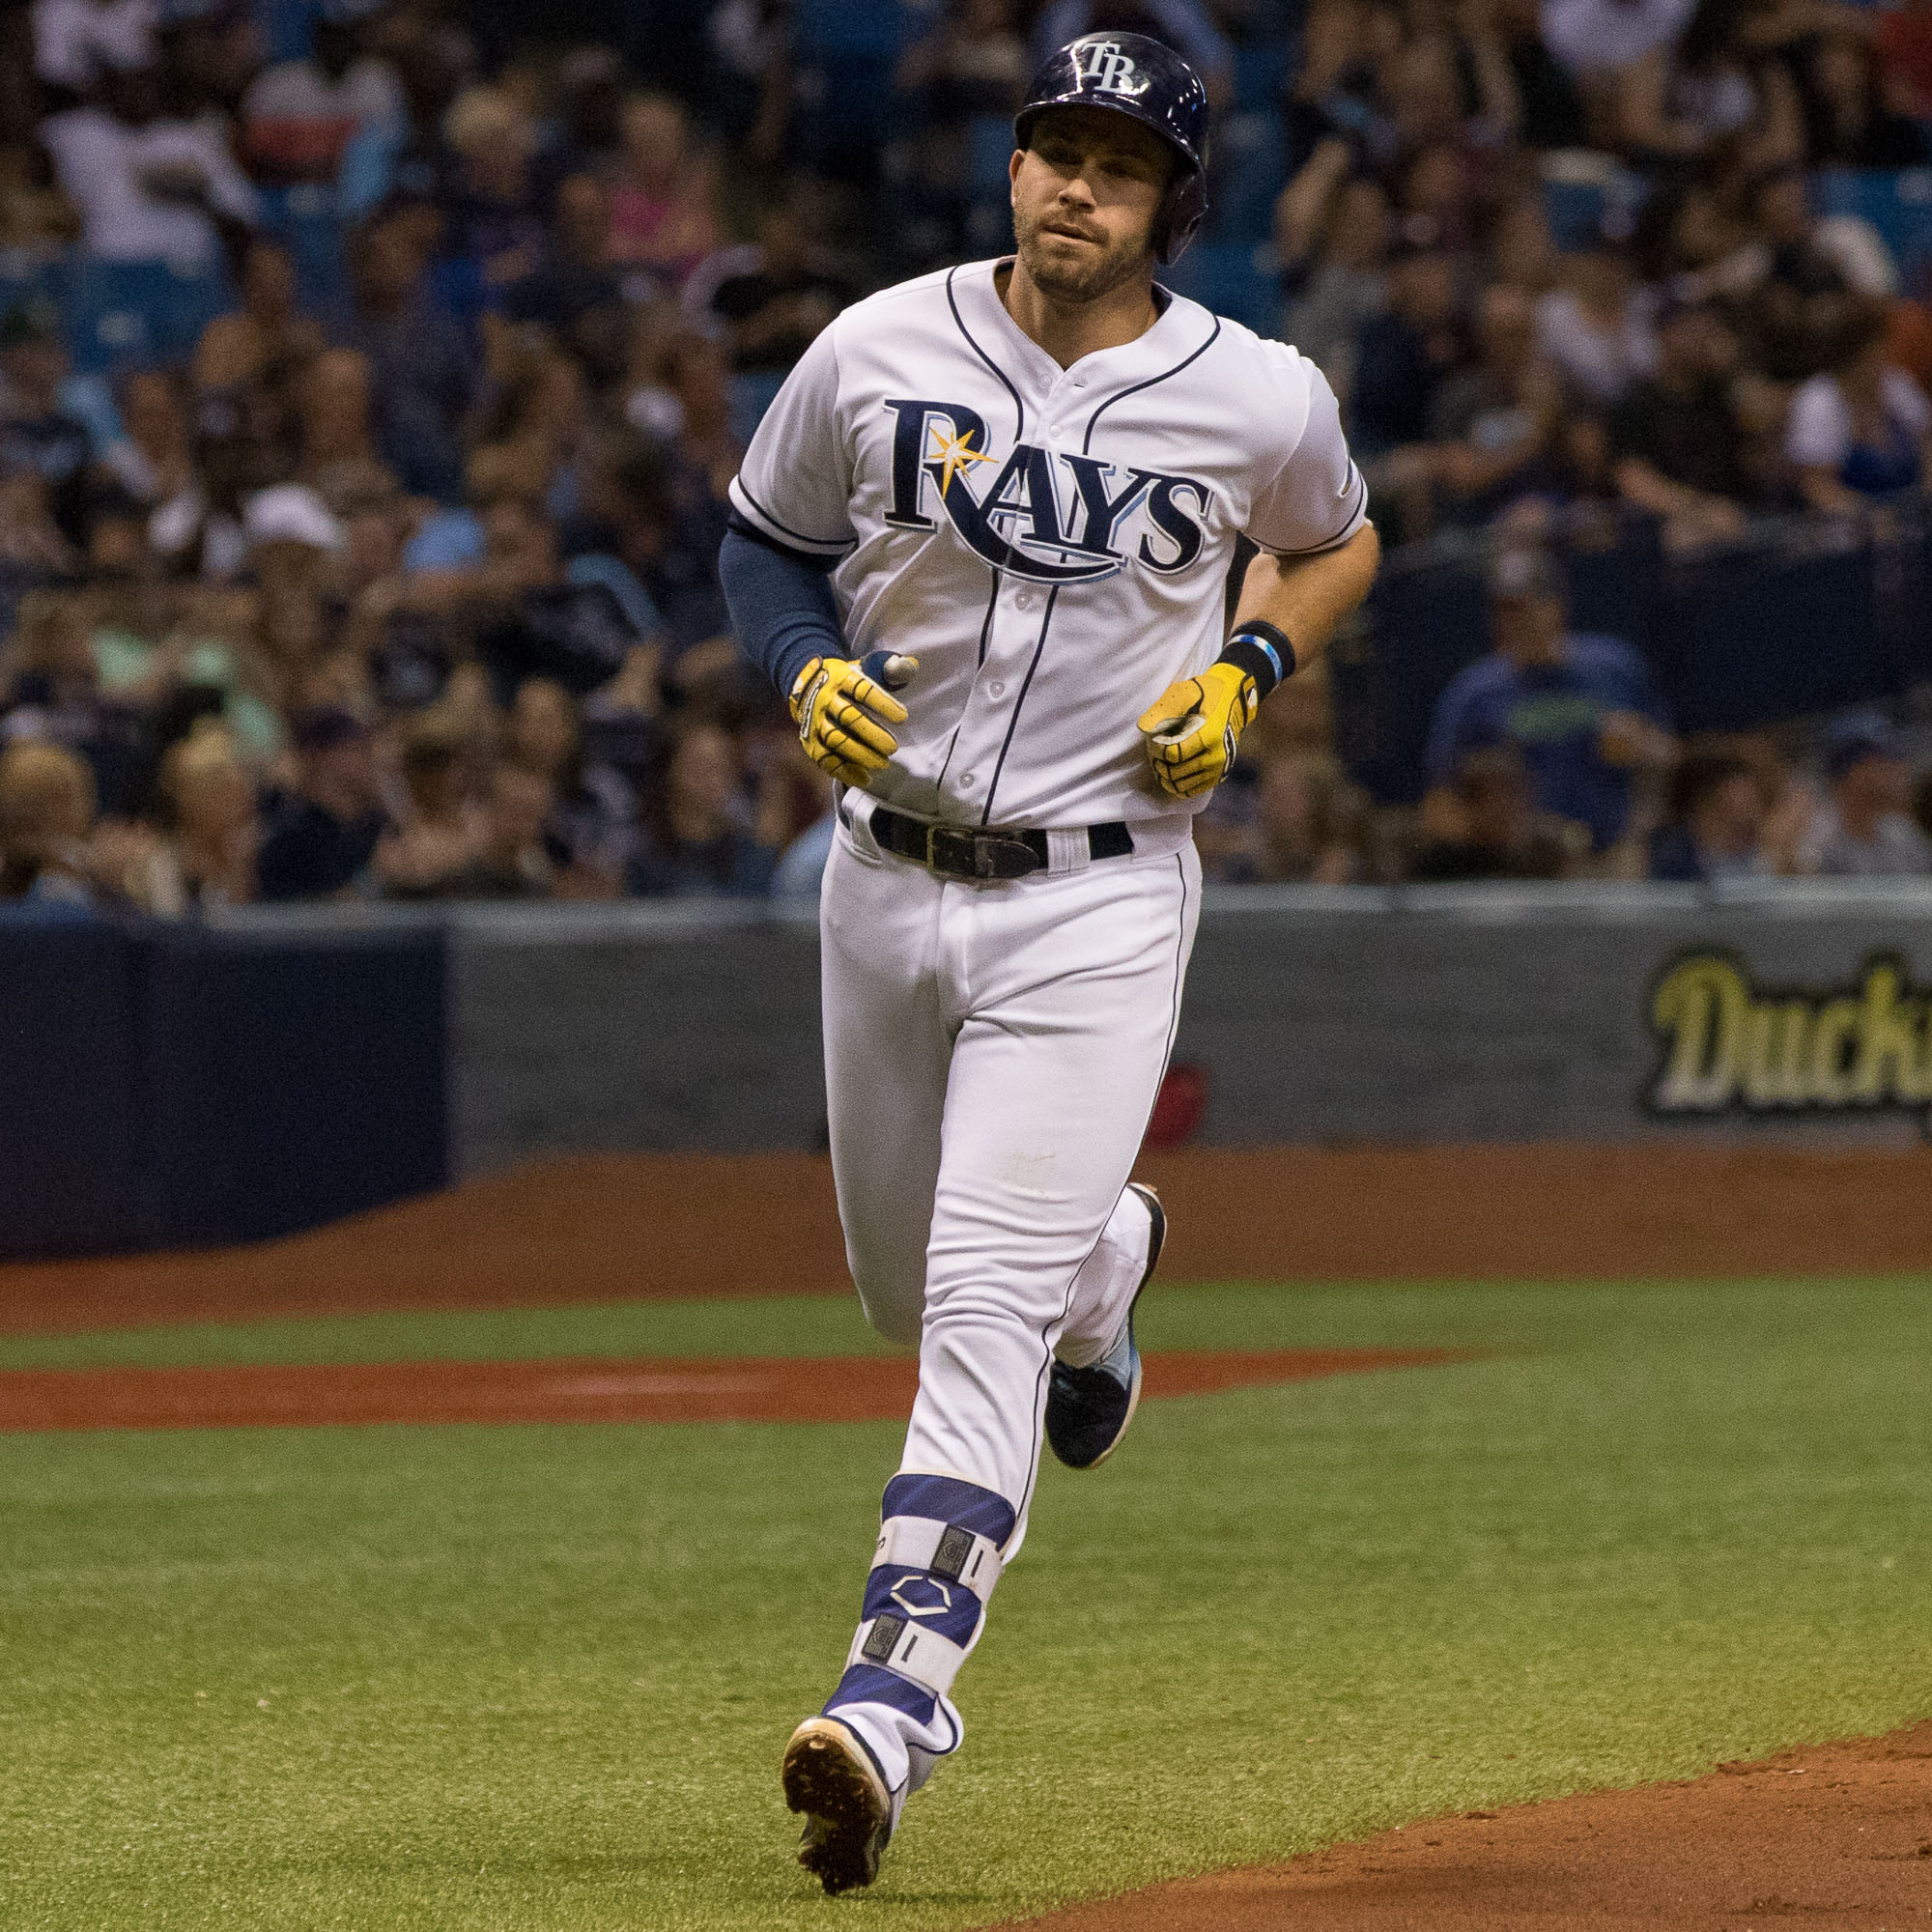 Evan Longoria had a double and two-run homer./STEVEN MUNCIE